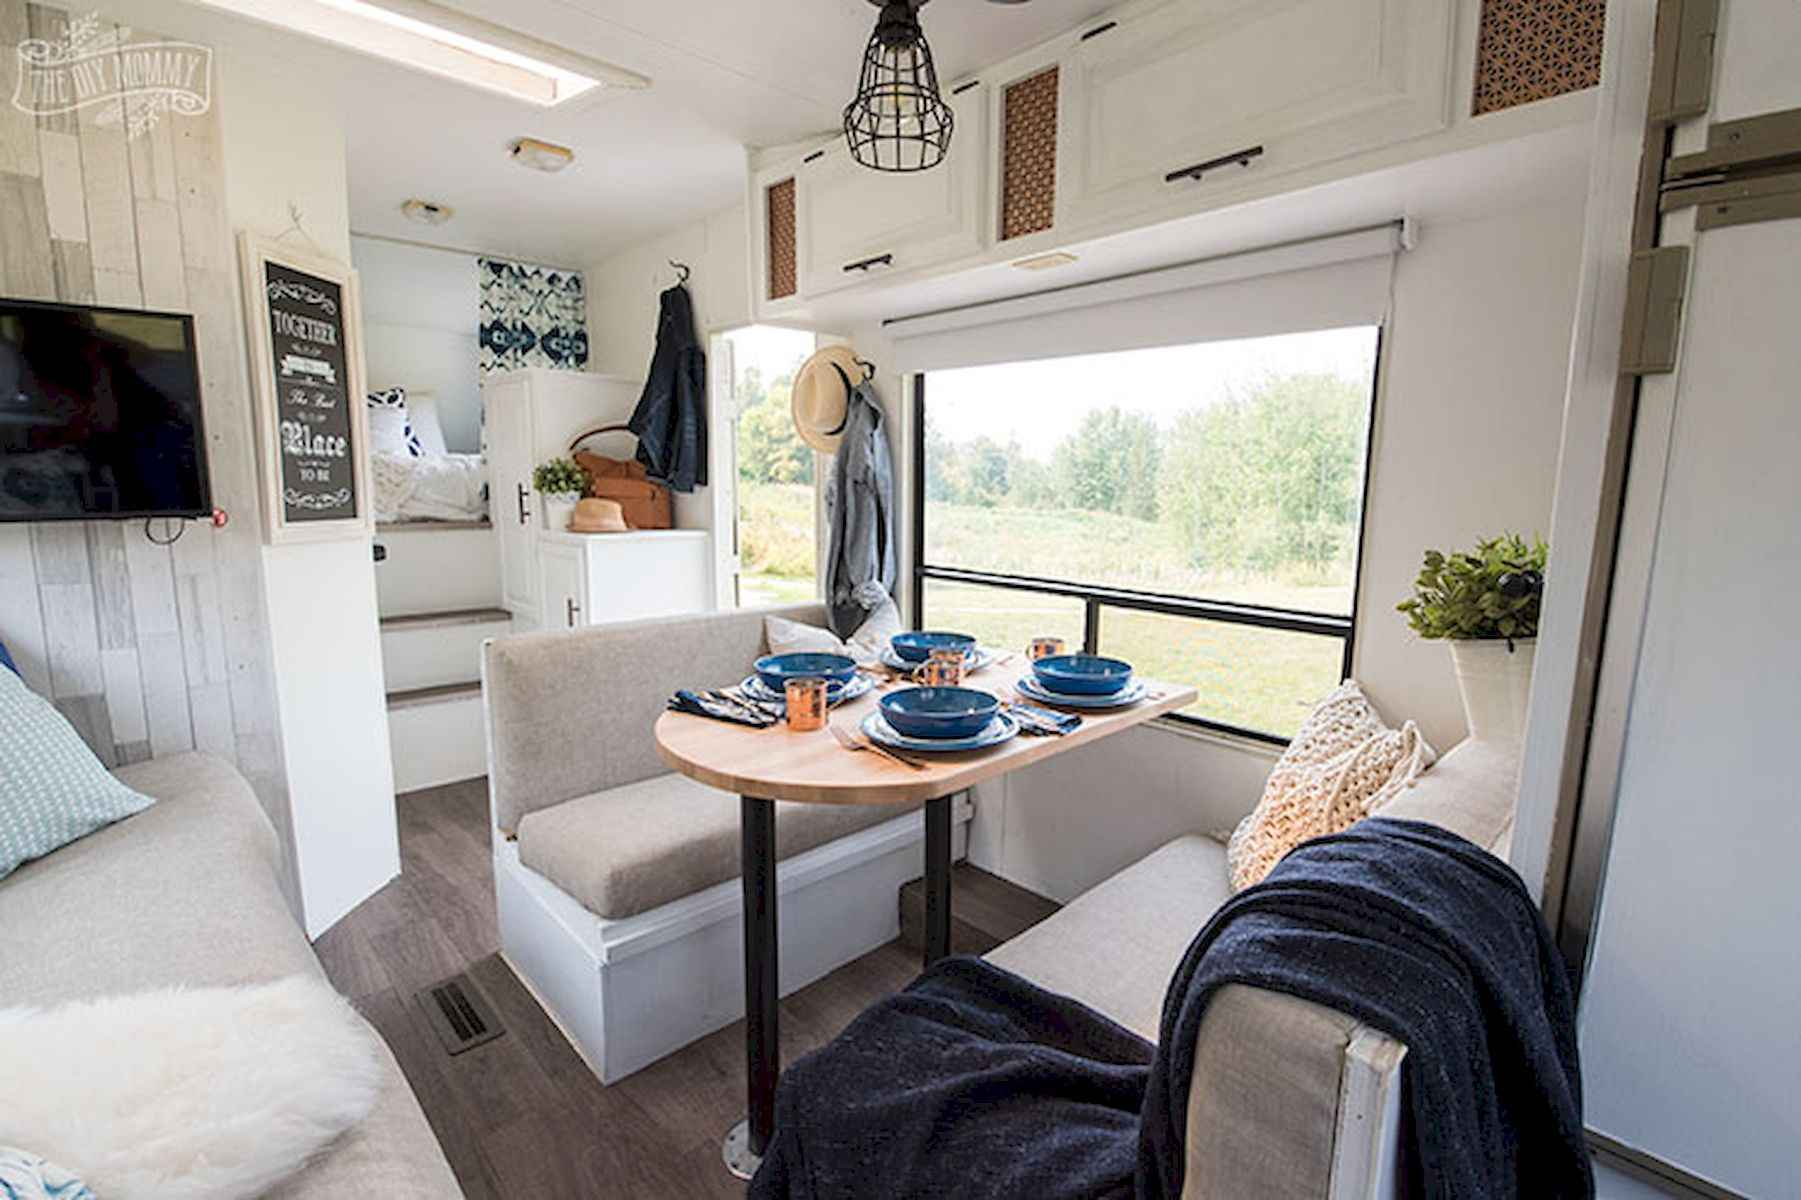 70 Stunning RV Living Camper Room Ideas Decorations Make Your Summer Awesome (59)